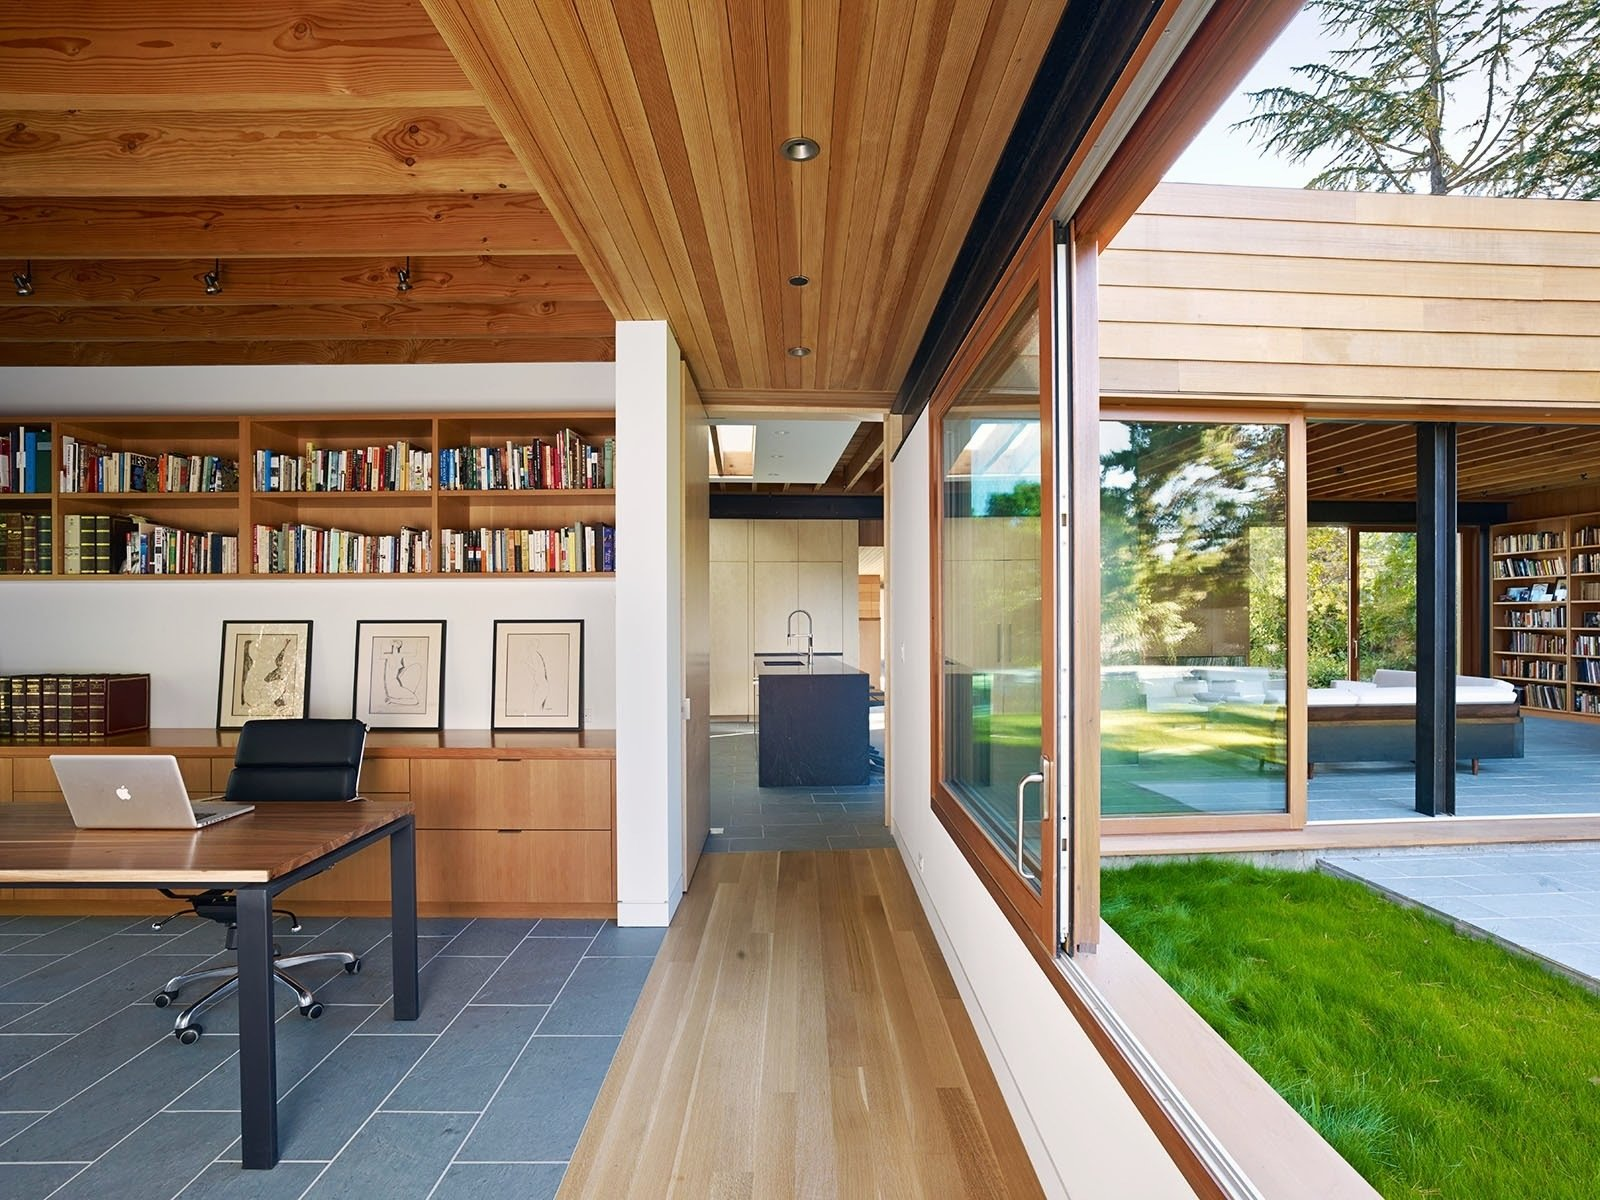 The relationship between interior and exterior becomes crucial in the articulation of the residence. Tagged: Office, Chair, Slate Floor, Bookcase, Study, and Desk. A Sustainable Home in Silicon Valley - Photo 5 of 8